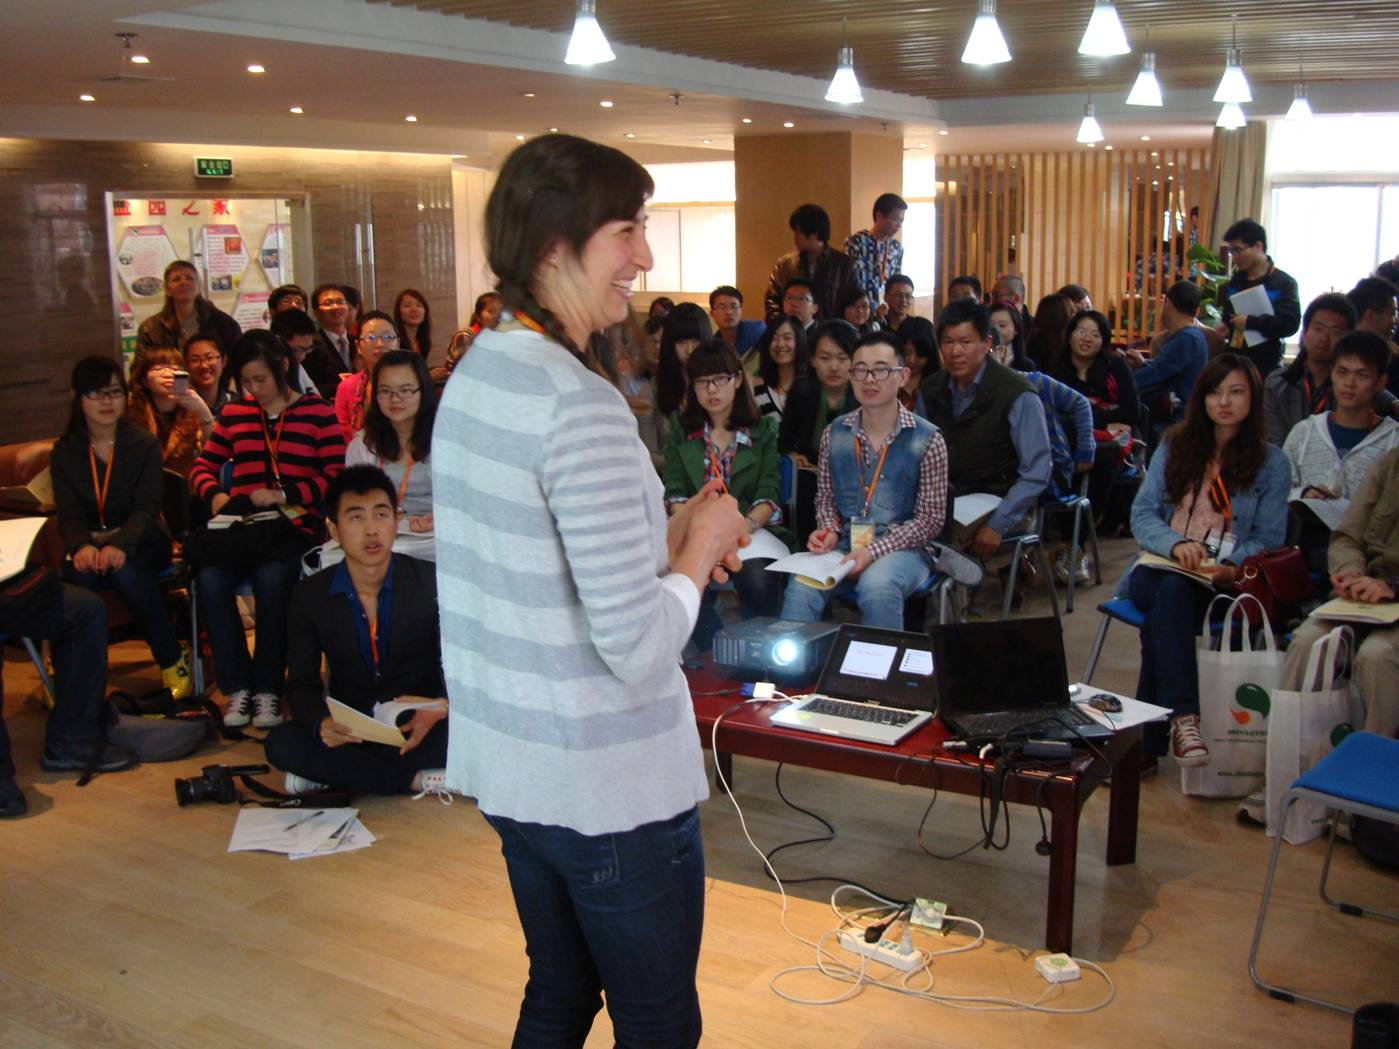 Picture:  Talis, one of the co-founders of Feel Good, gives an inspiring talk at the Chun Hui Youth Charity forum.  Wuxi, China